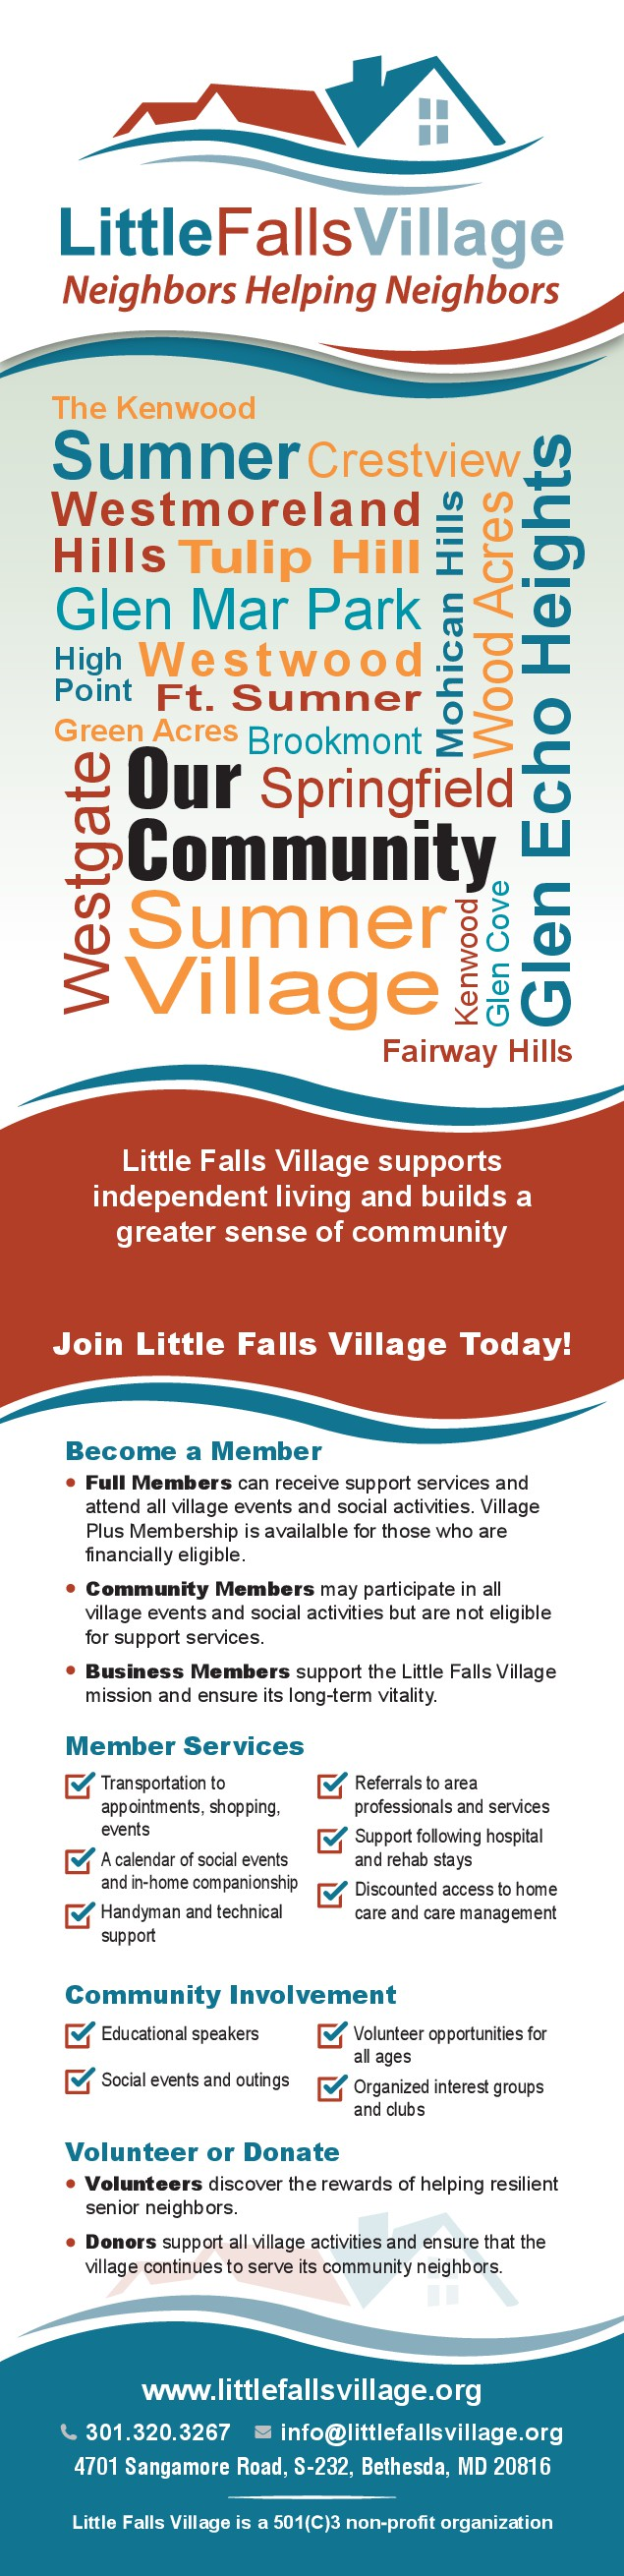 Little Falls Village is looking for a dynamic Rack Card